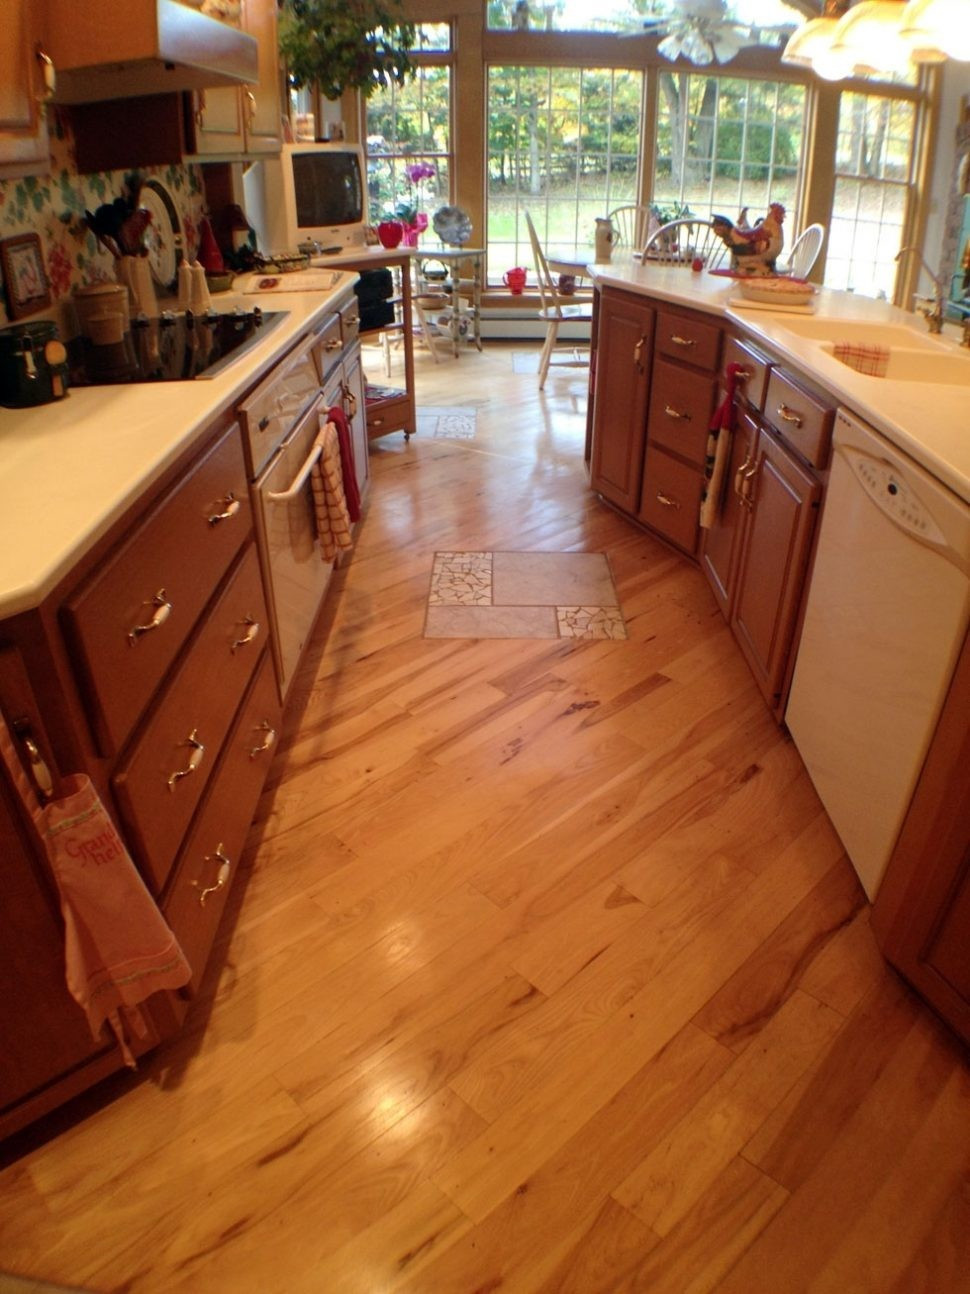 hardwood floor refinishing prices per square foot of 17 new cost of hardwood floor installation pics dizpos com with regard to cost of hardwood floor installation unique 16 lovely s hardwood floor installation cost image of 17